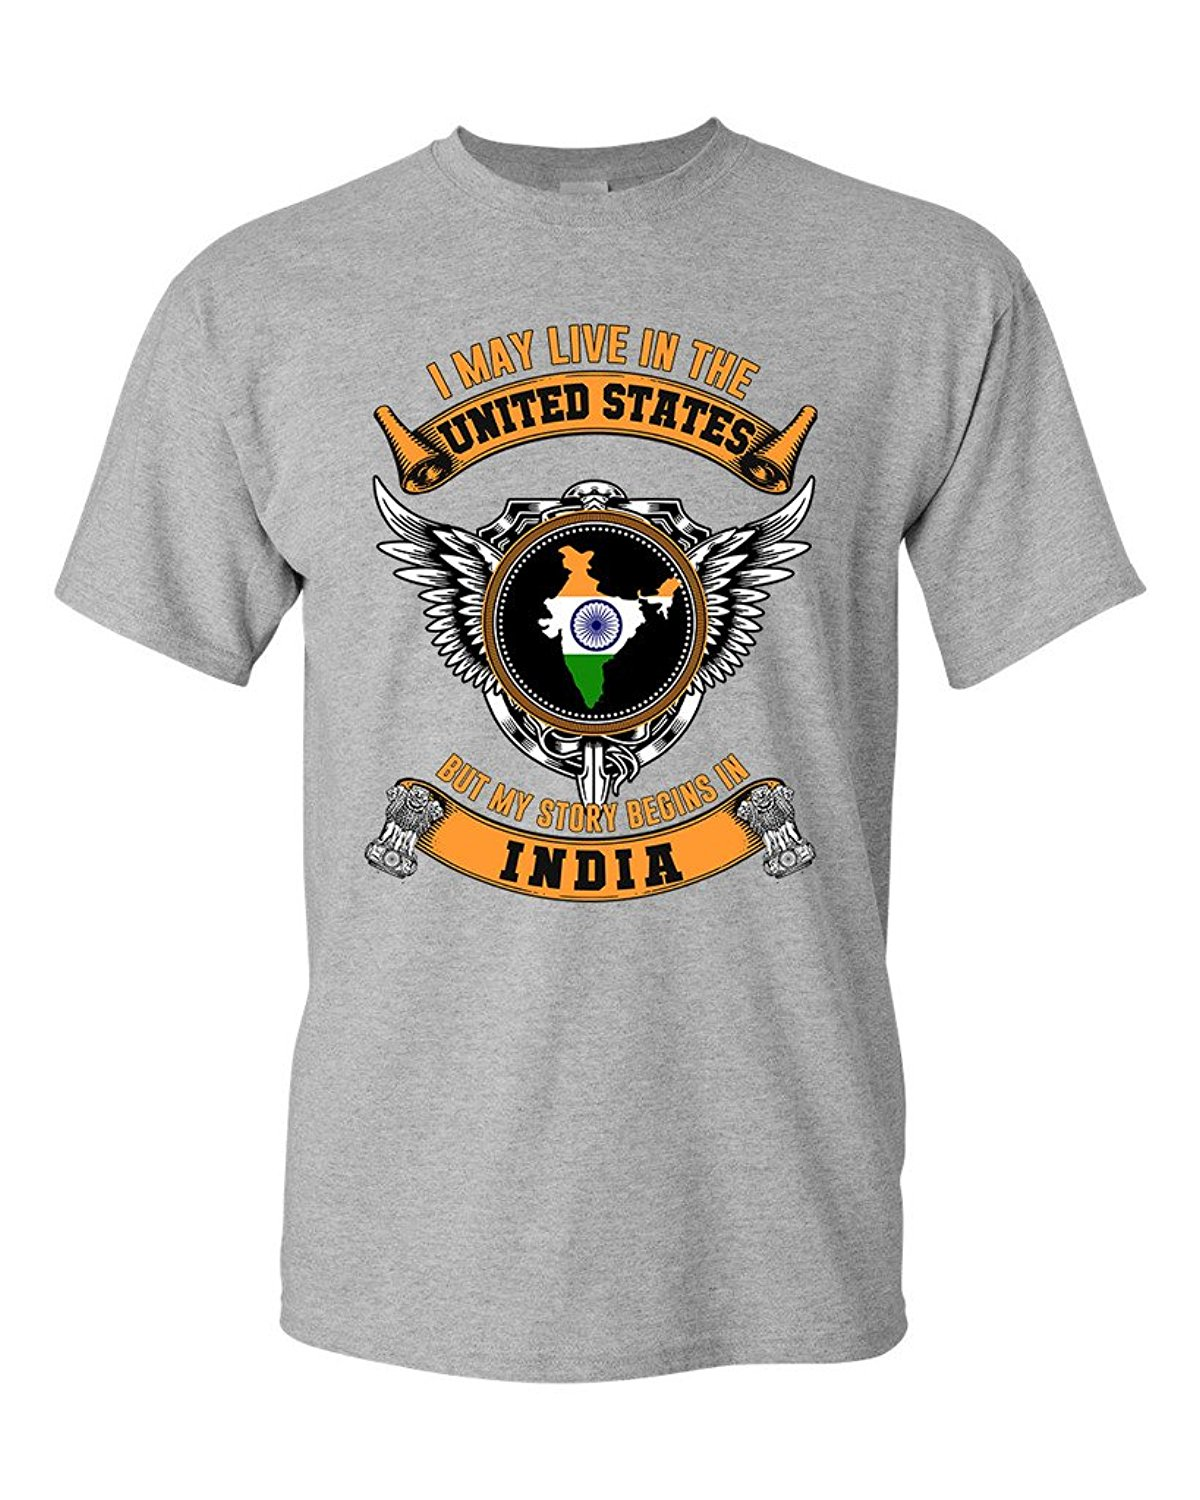 Design your own t-shirt and save it - Compare Prices On Native Cotton Online Shopping Buy Low Price Compare Prices On Native Cotton Online Shopping Buy Low Price Design Your Own T Shirt